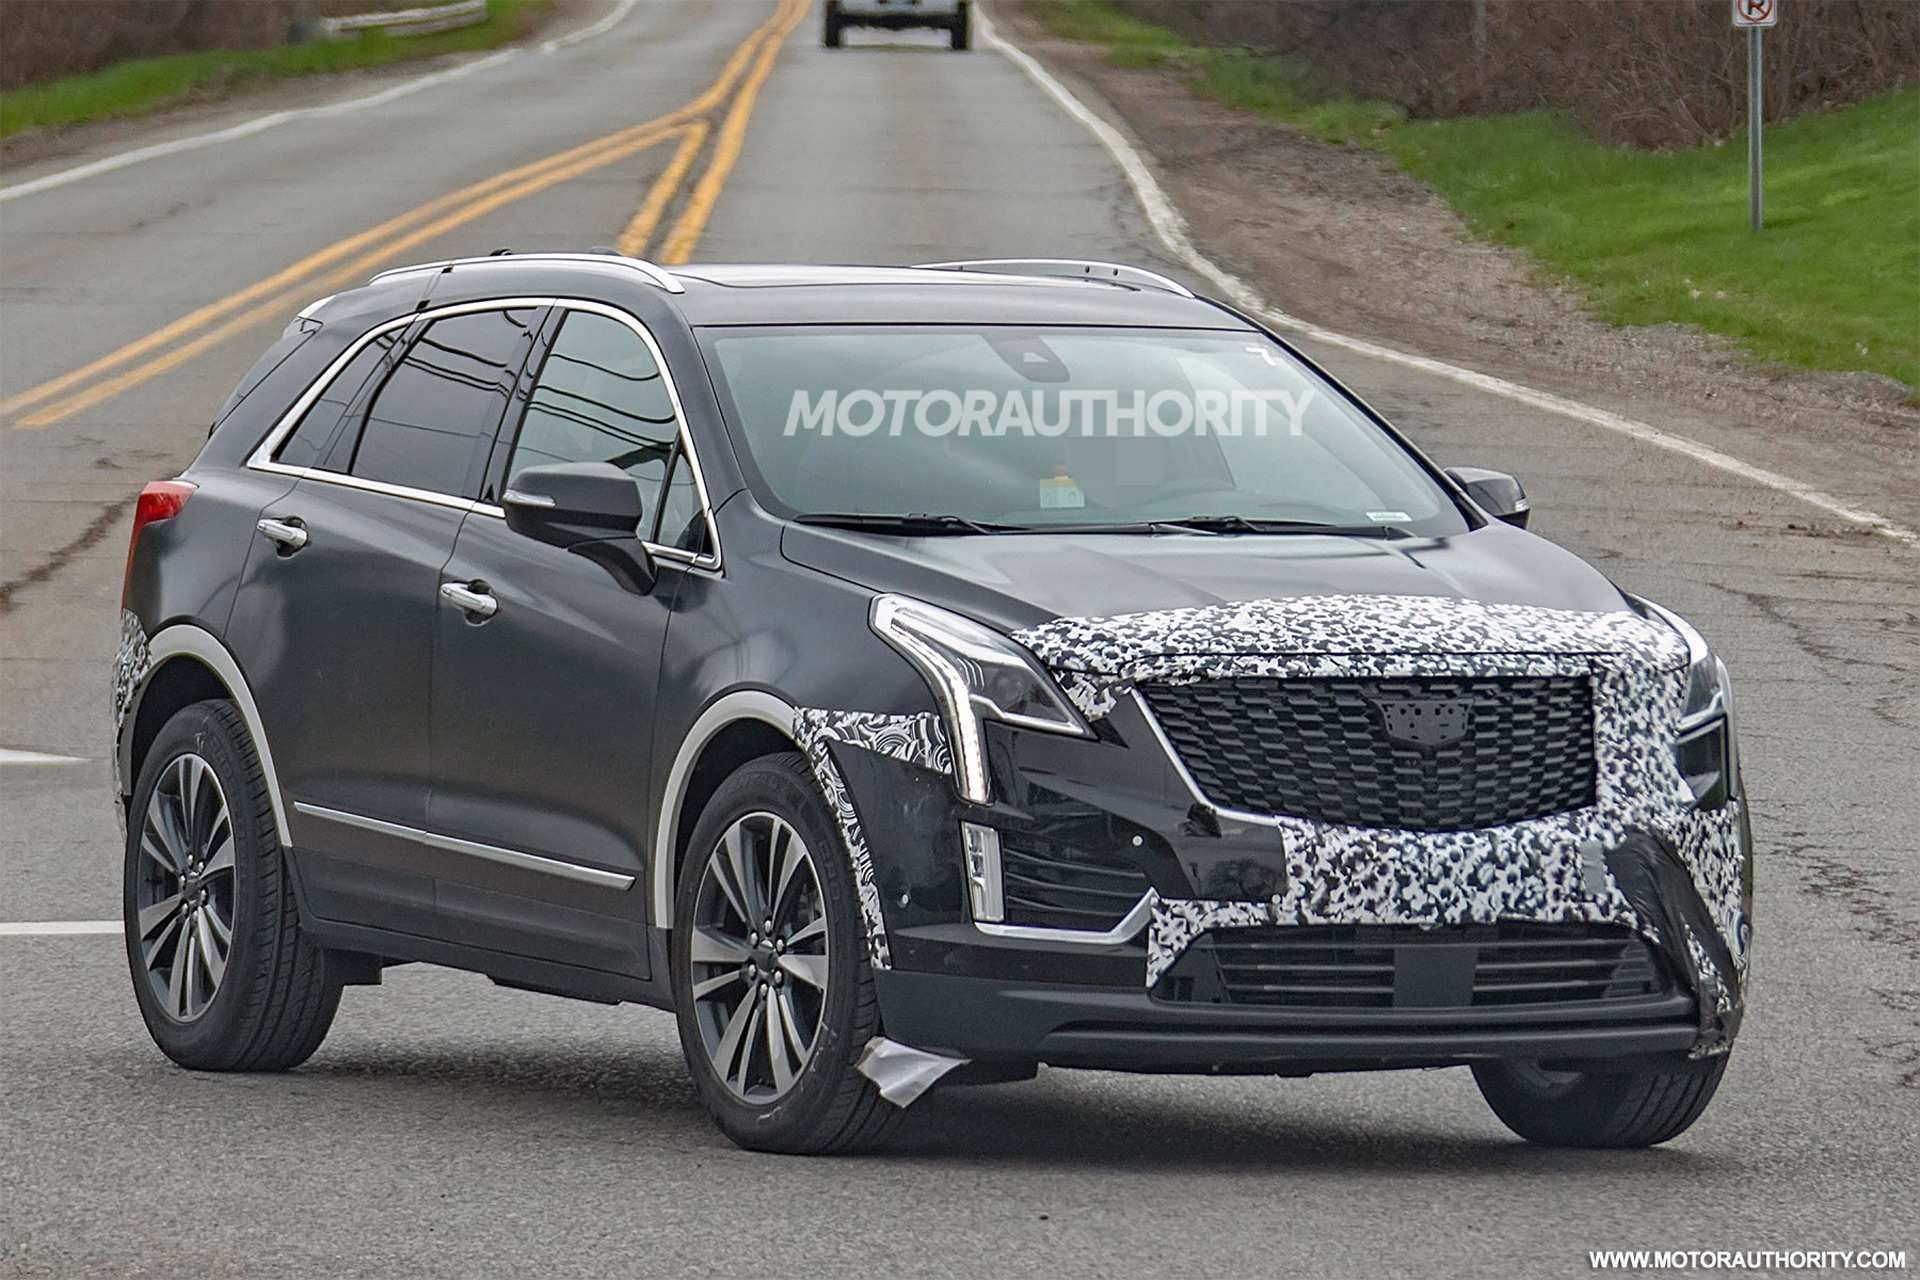 52 Concept of Spy Shots Cadillac Xt5 Price and Review for Spy Shots Cadillac Xt5